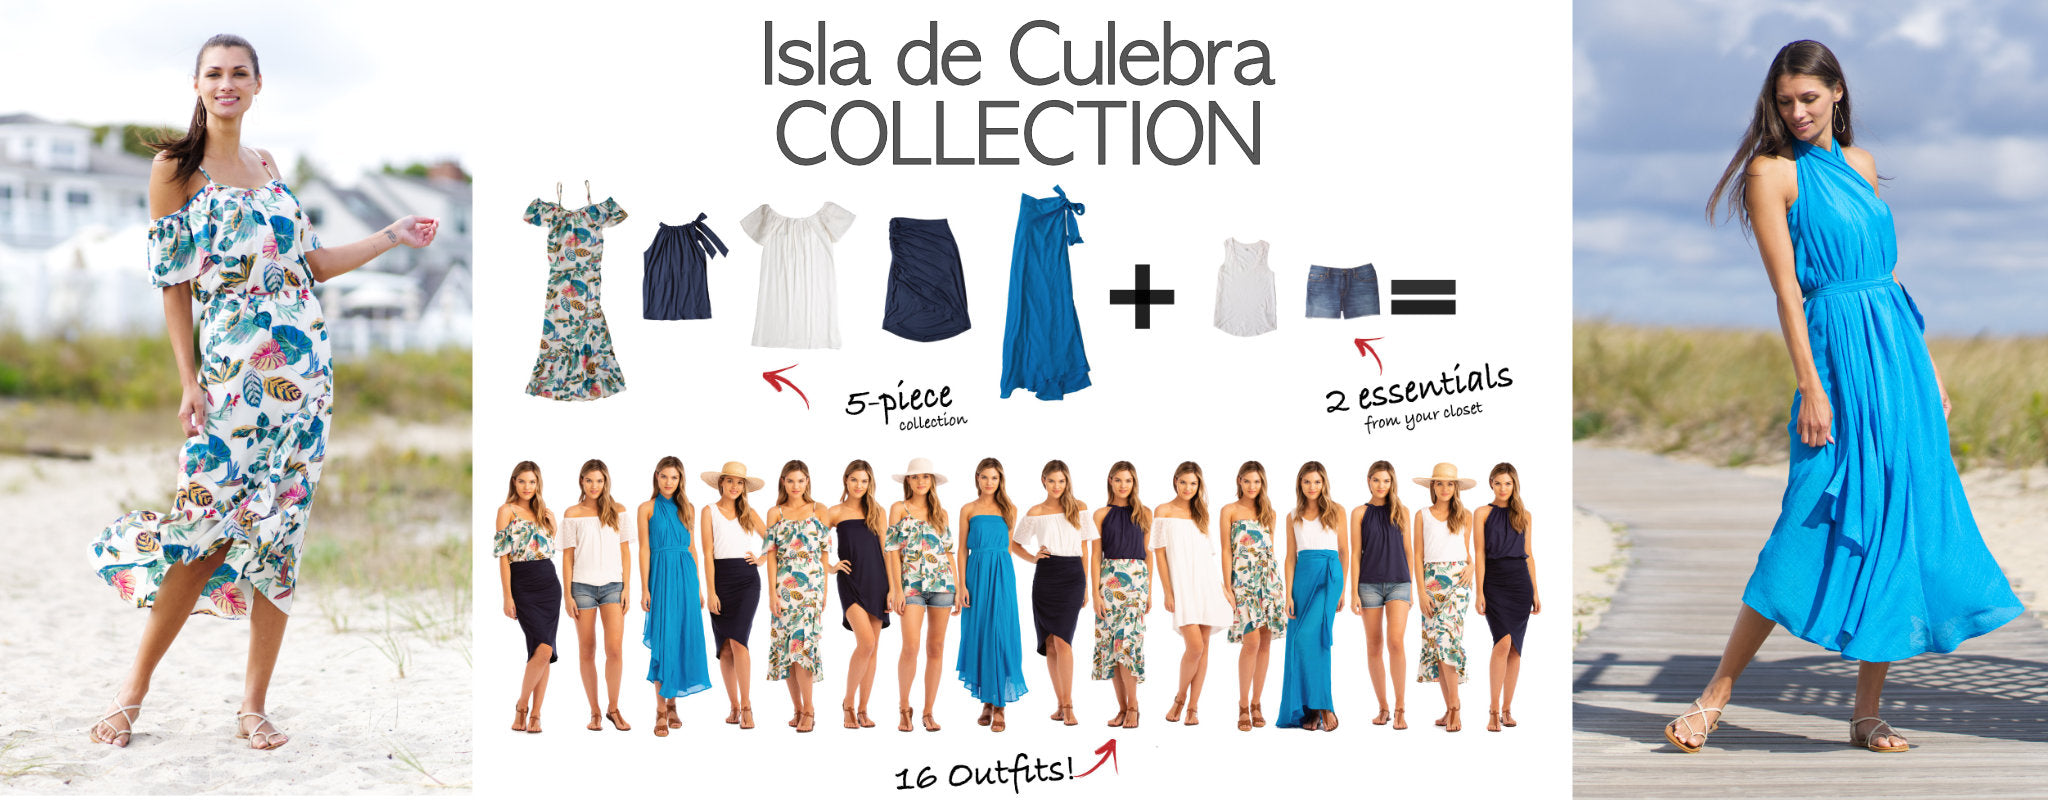 Isla De Culebra Collection